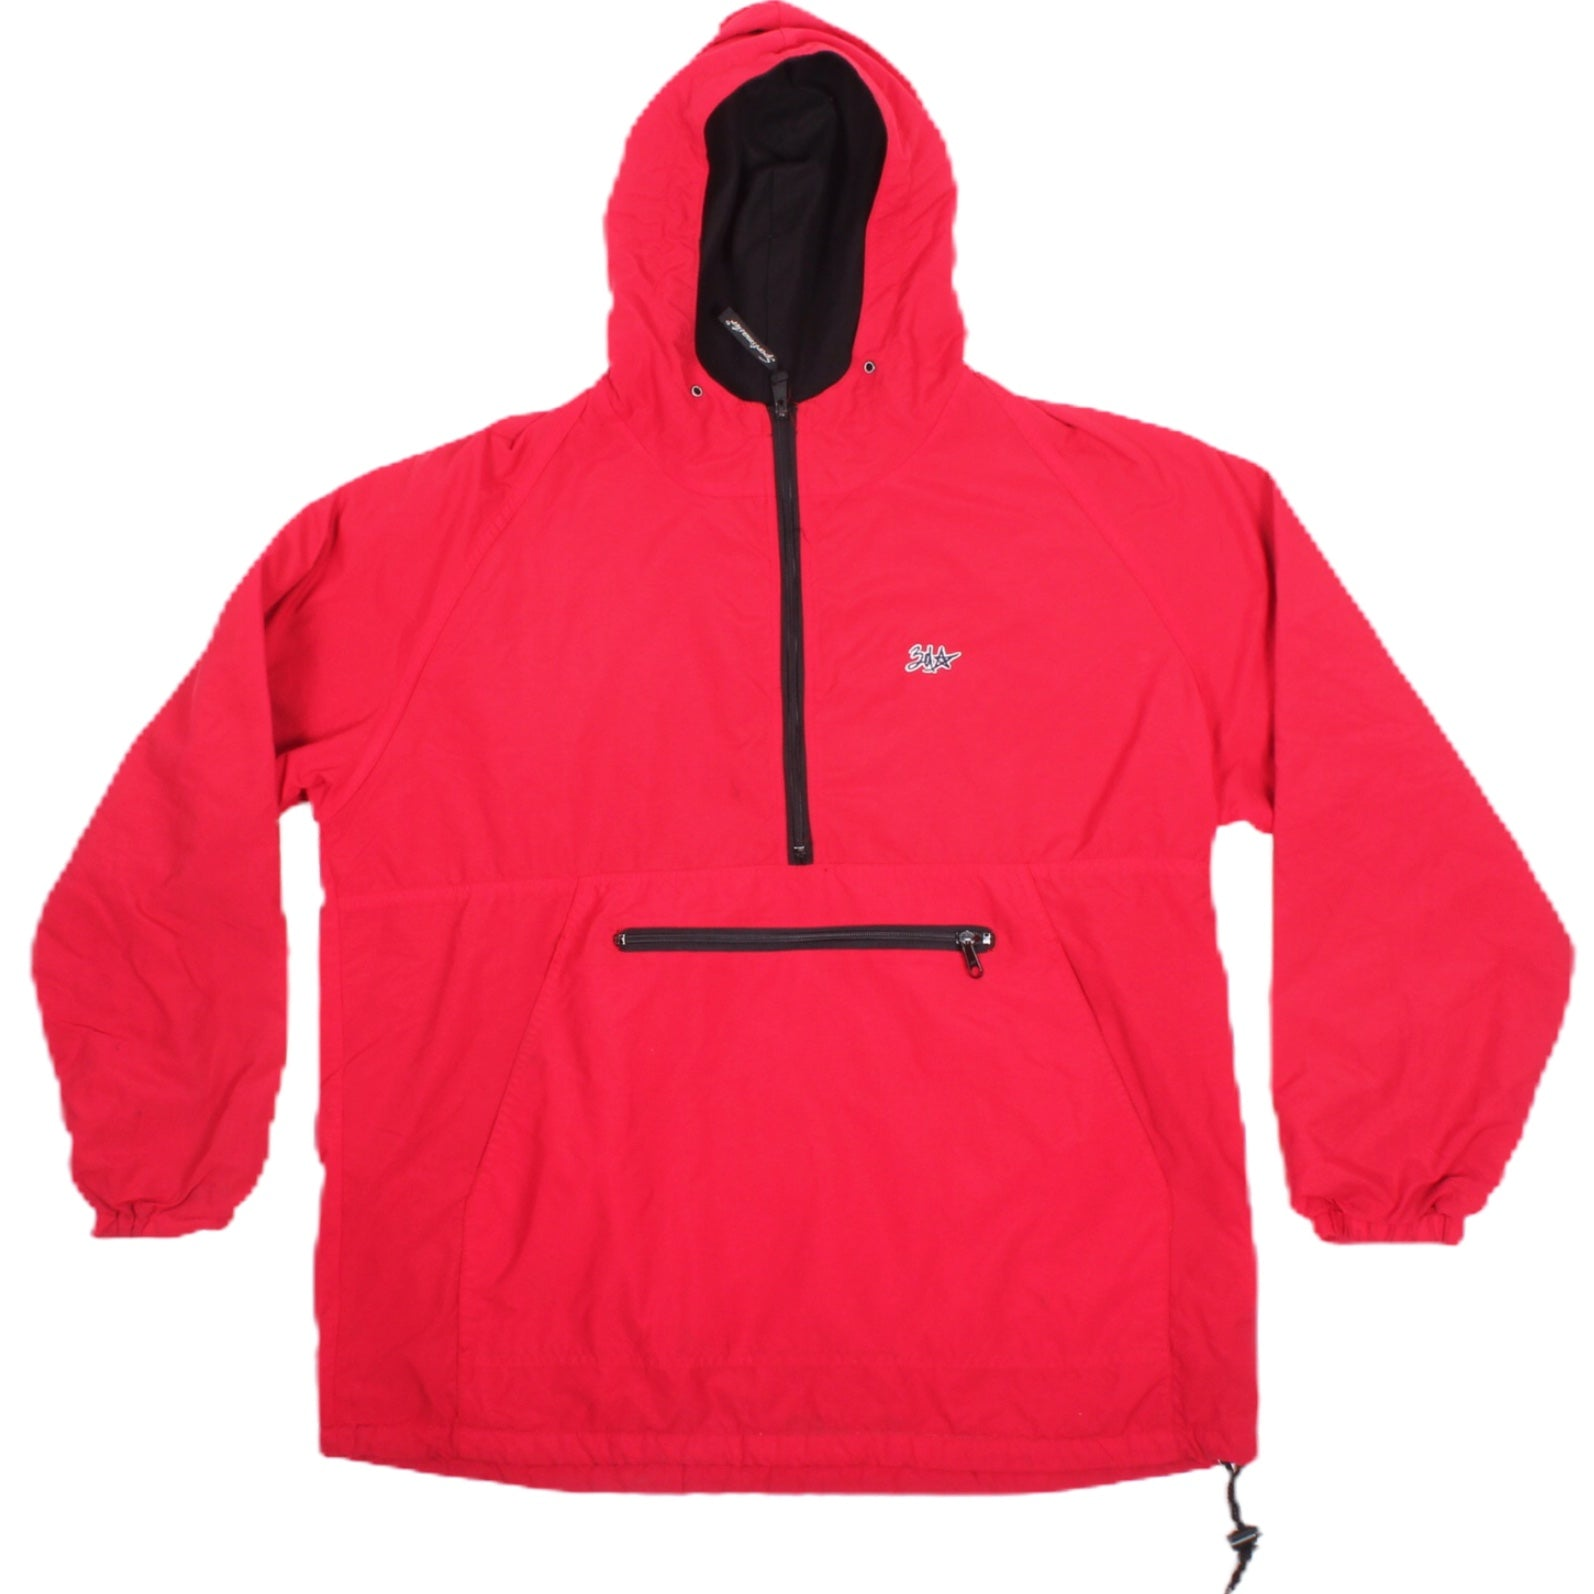 Overripe 3D Innovations Fleece Lined Windbreaker Red Baggy Medium